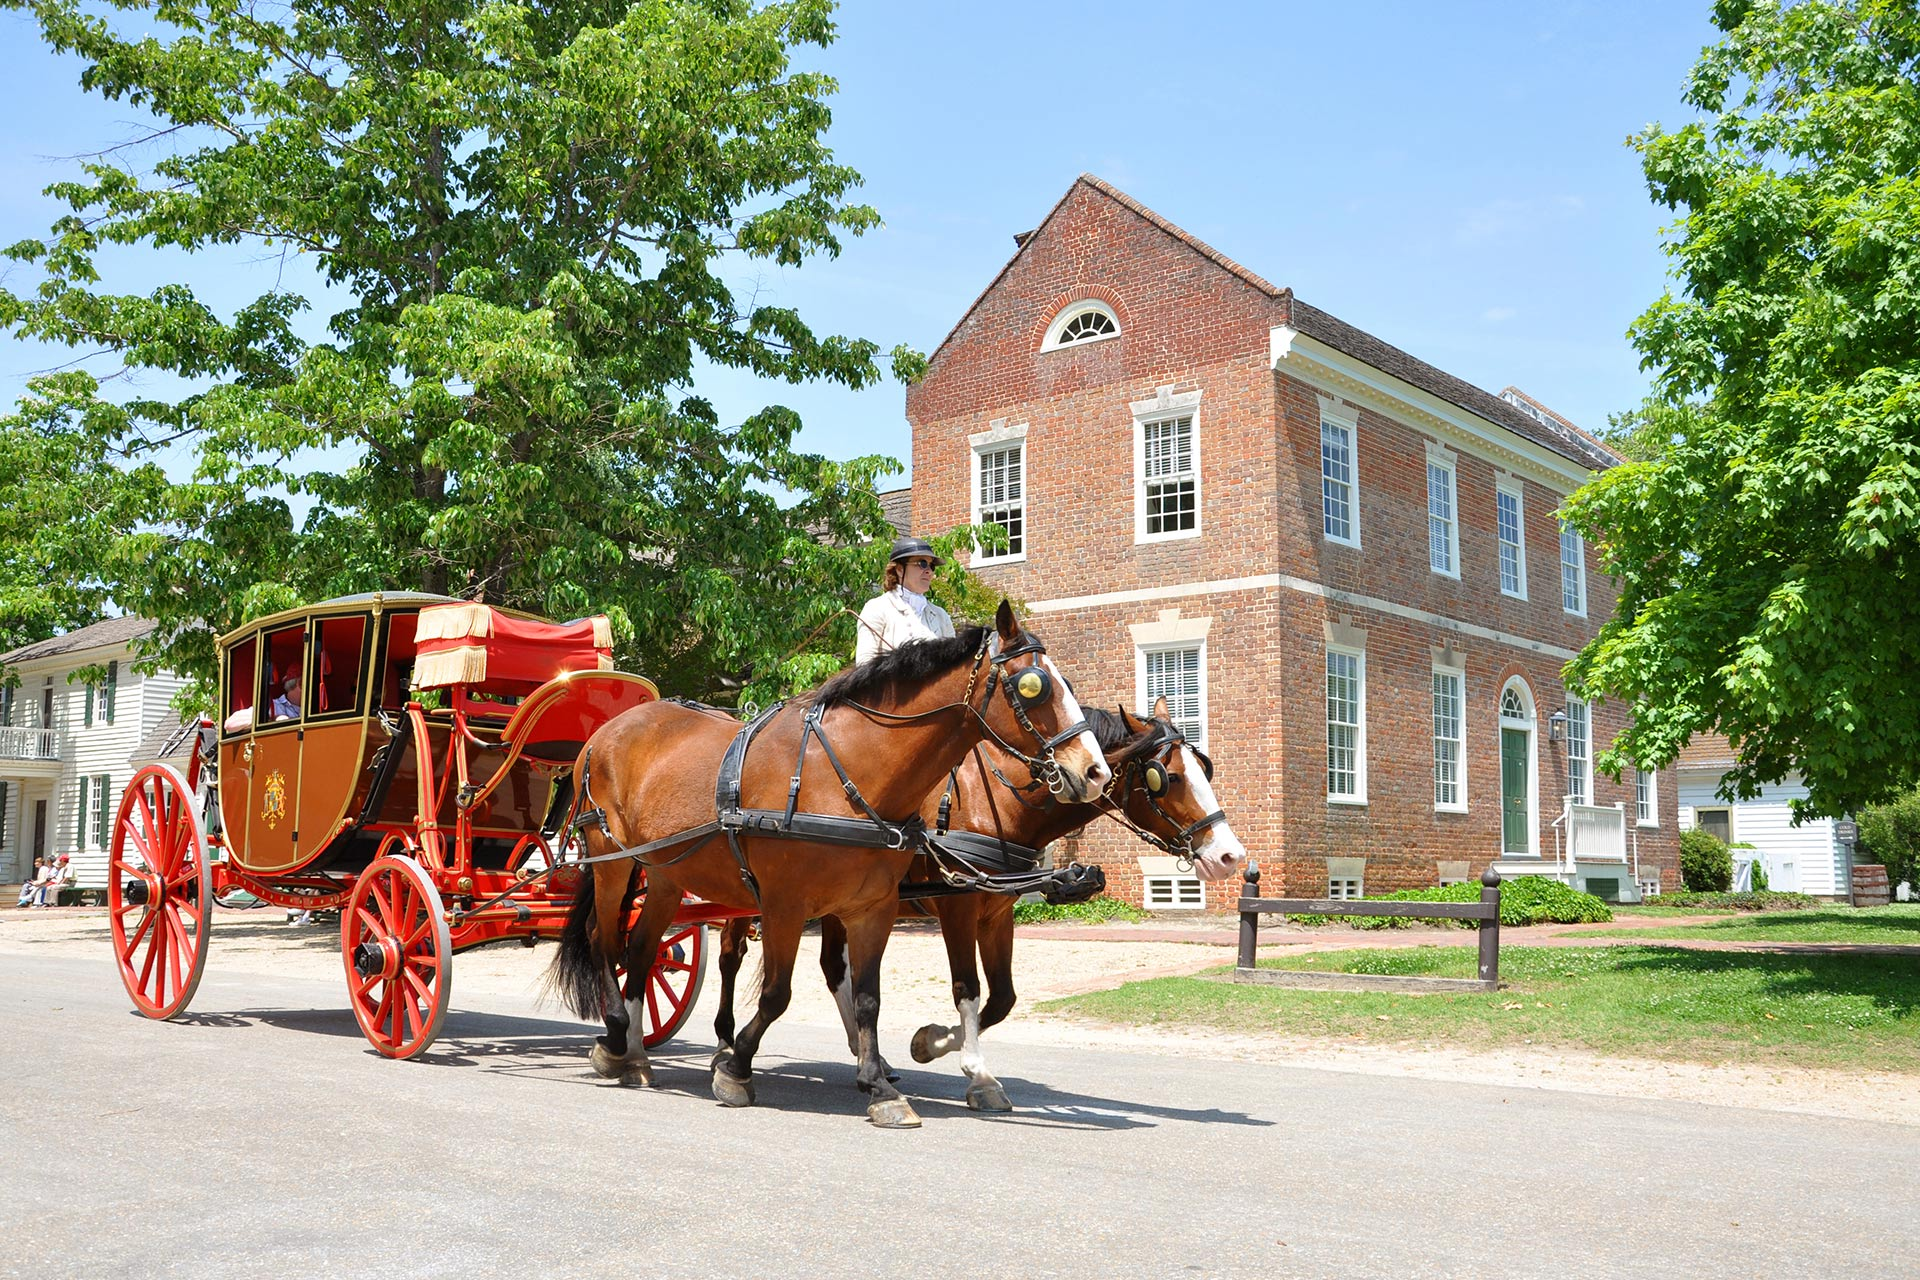 Colonial Williamsburg in Virginia; Photo Courtesy of jiawangkun/Shutterstock.com